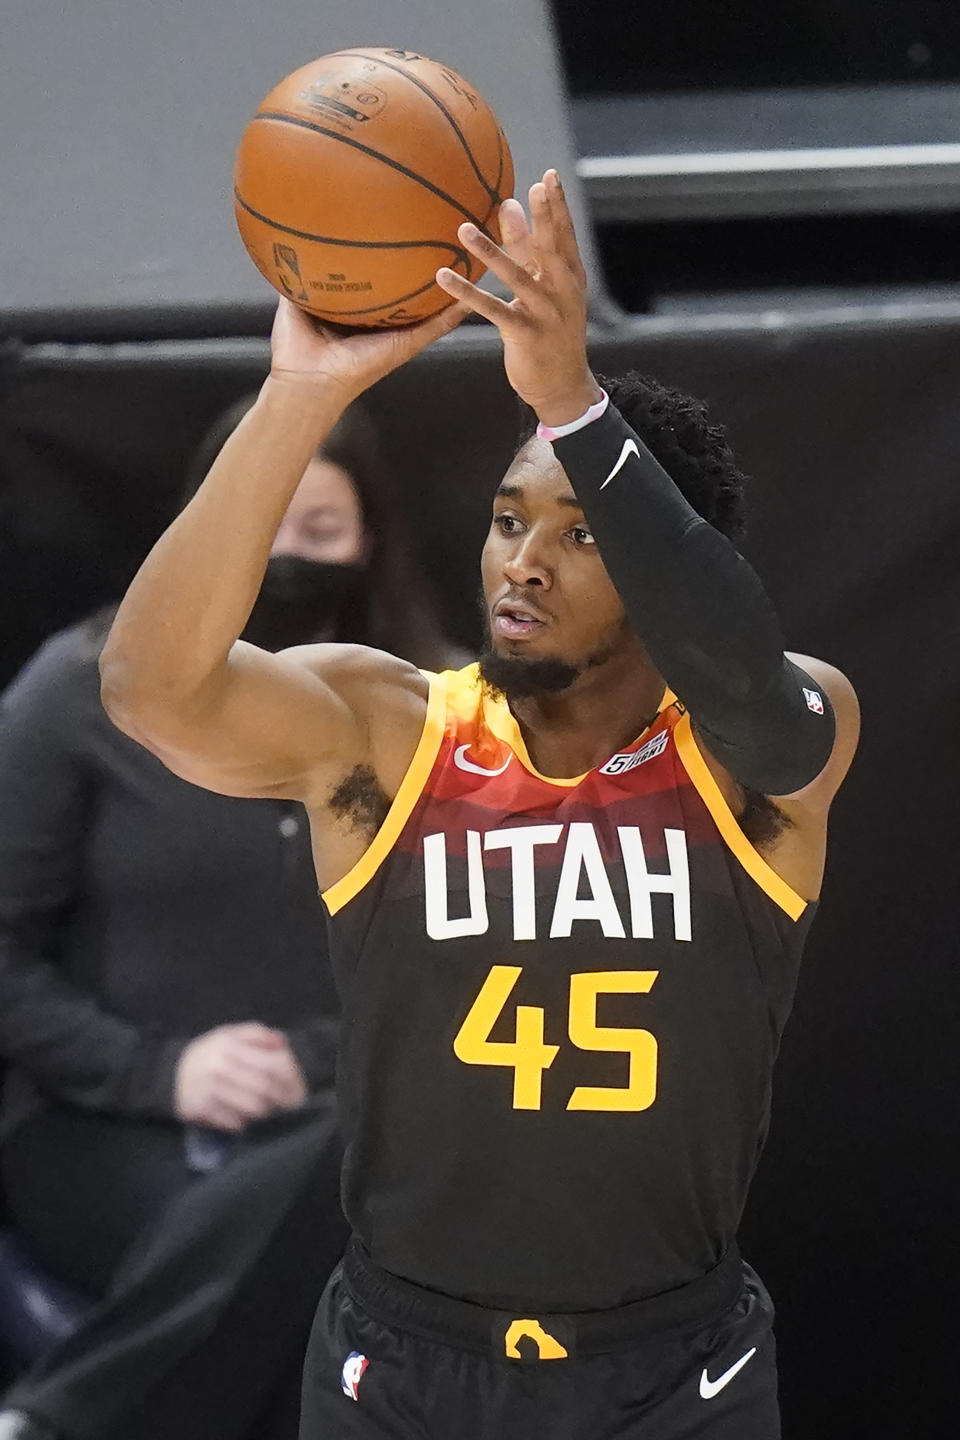 Utah Jazz guard Donovan Mitchell (45) shoots a three-point basket against the Orlando Magic in the first half during an NBA basketball game Saturday, April 3, 2021, in Salt Lake City. (AP Photo/Rick Bowmer)